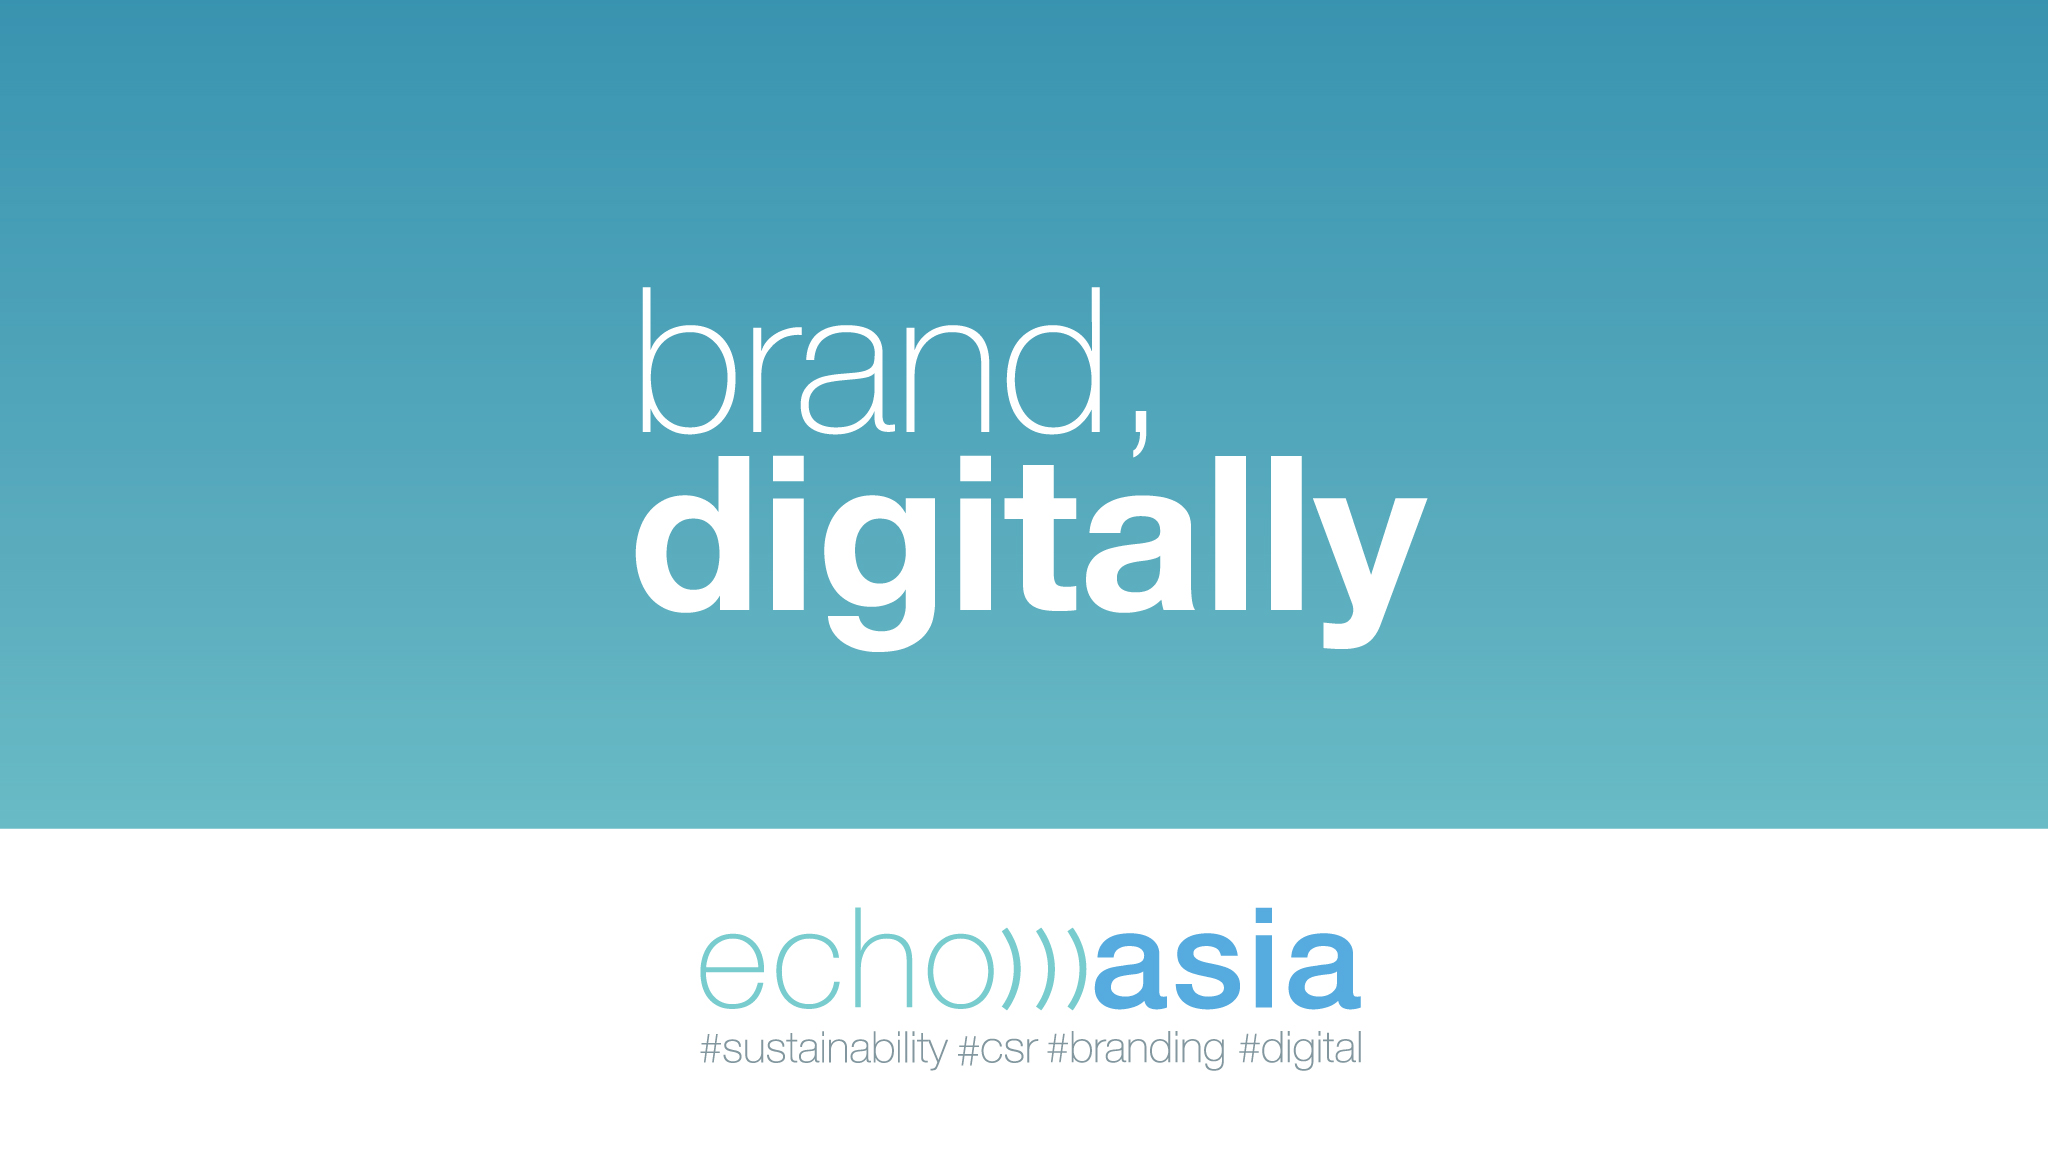 EA-BrandDigitally_2020 echo asia